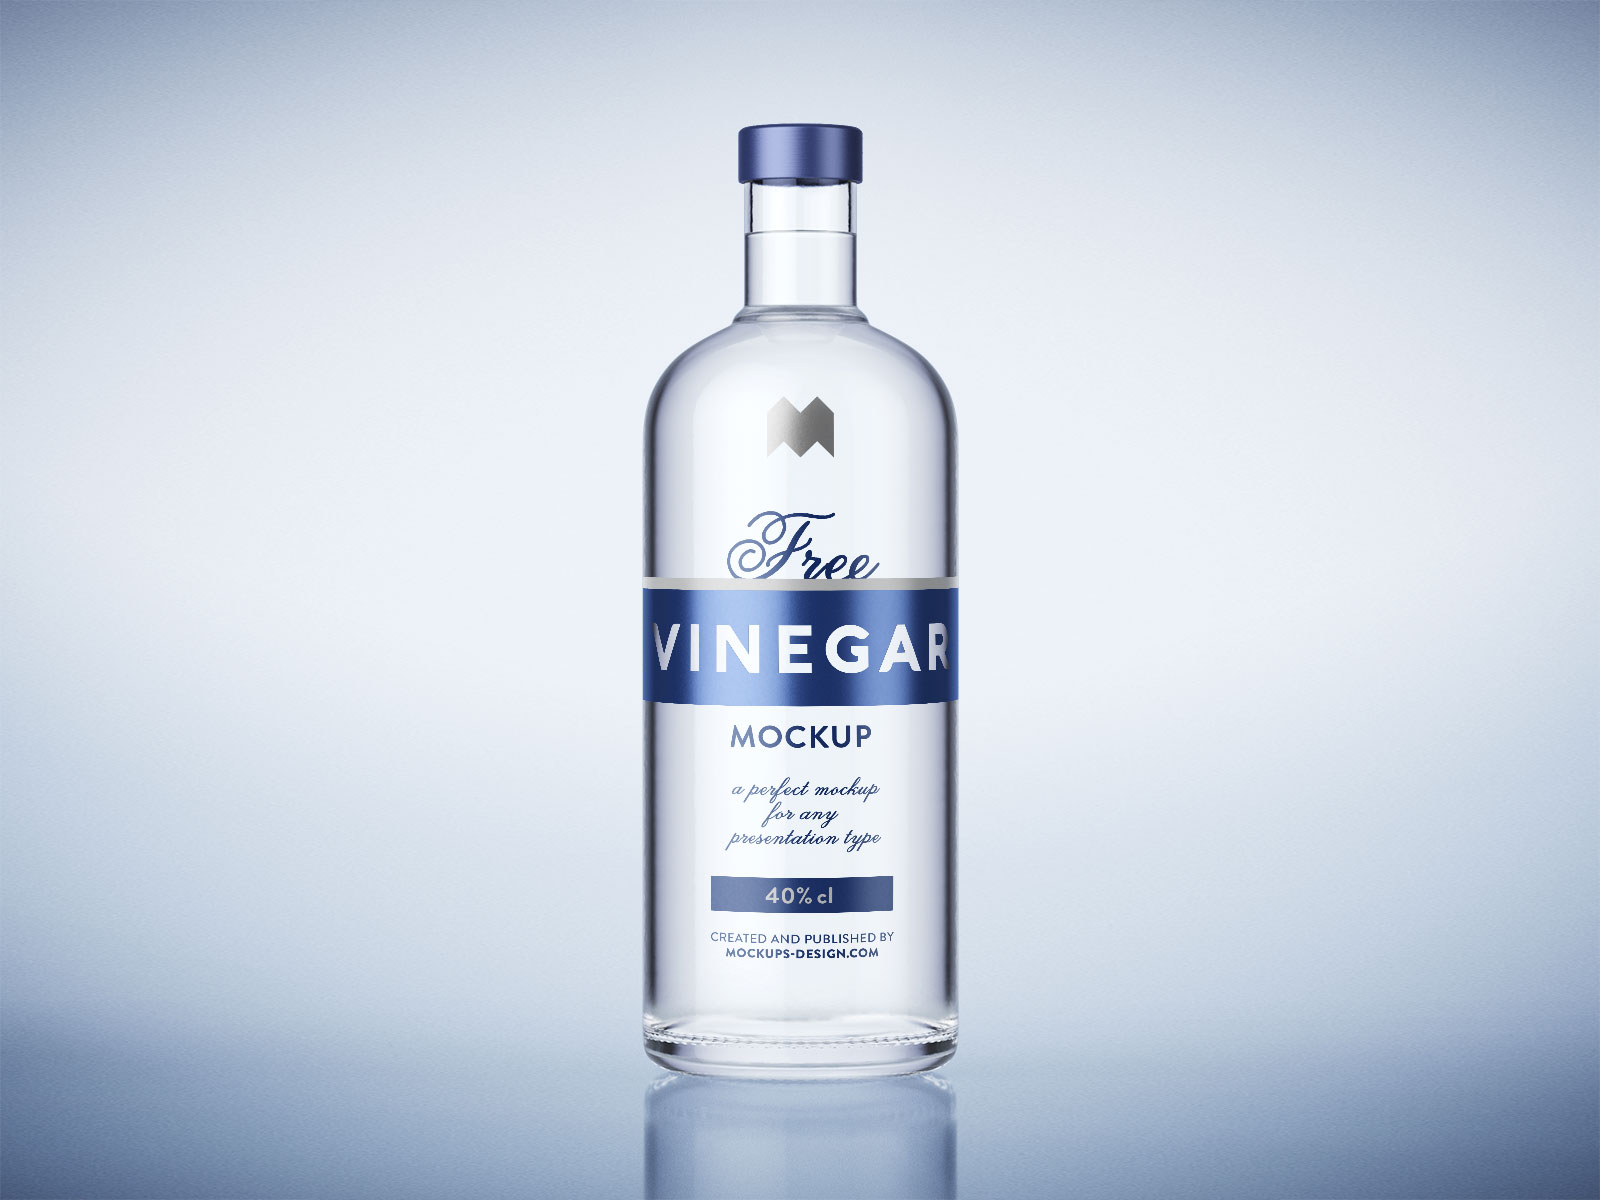 Free-Transparent-Vinegar-Oil-Spirit-Glass-Bottle-Mockup-PSD